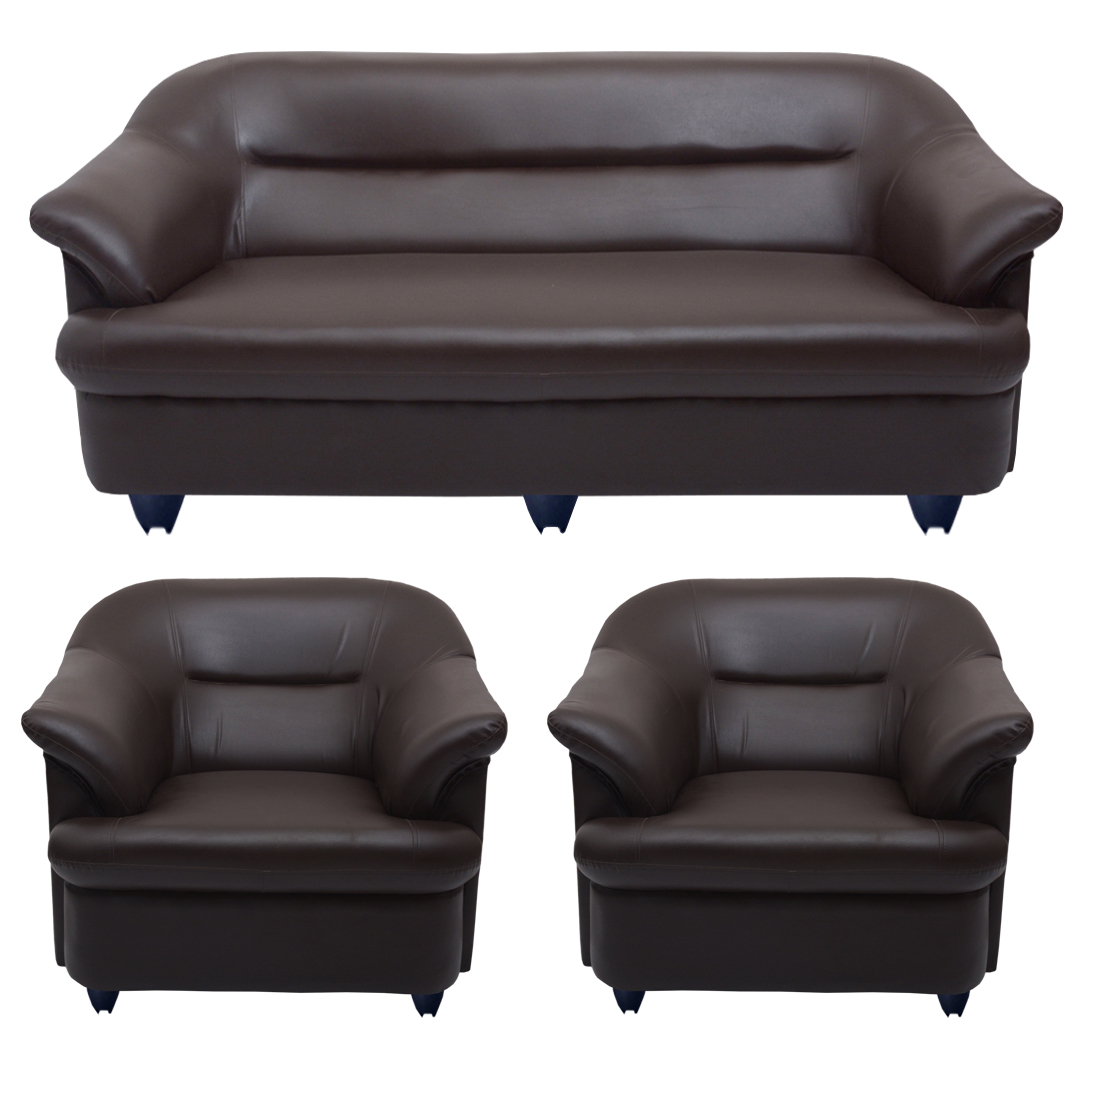 Sofa Set Online Bharat Lifestyle Sagittarius Leatherette 3 1 1 Brown Sofa Set